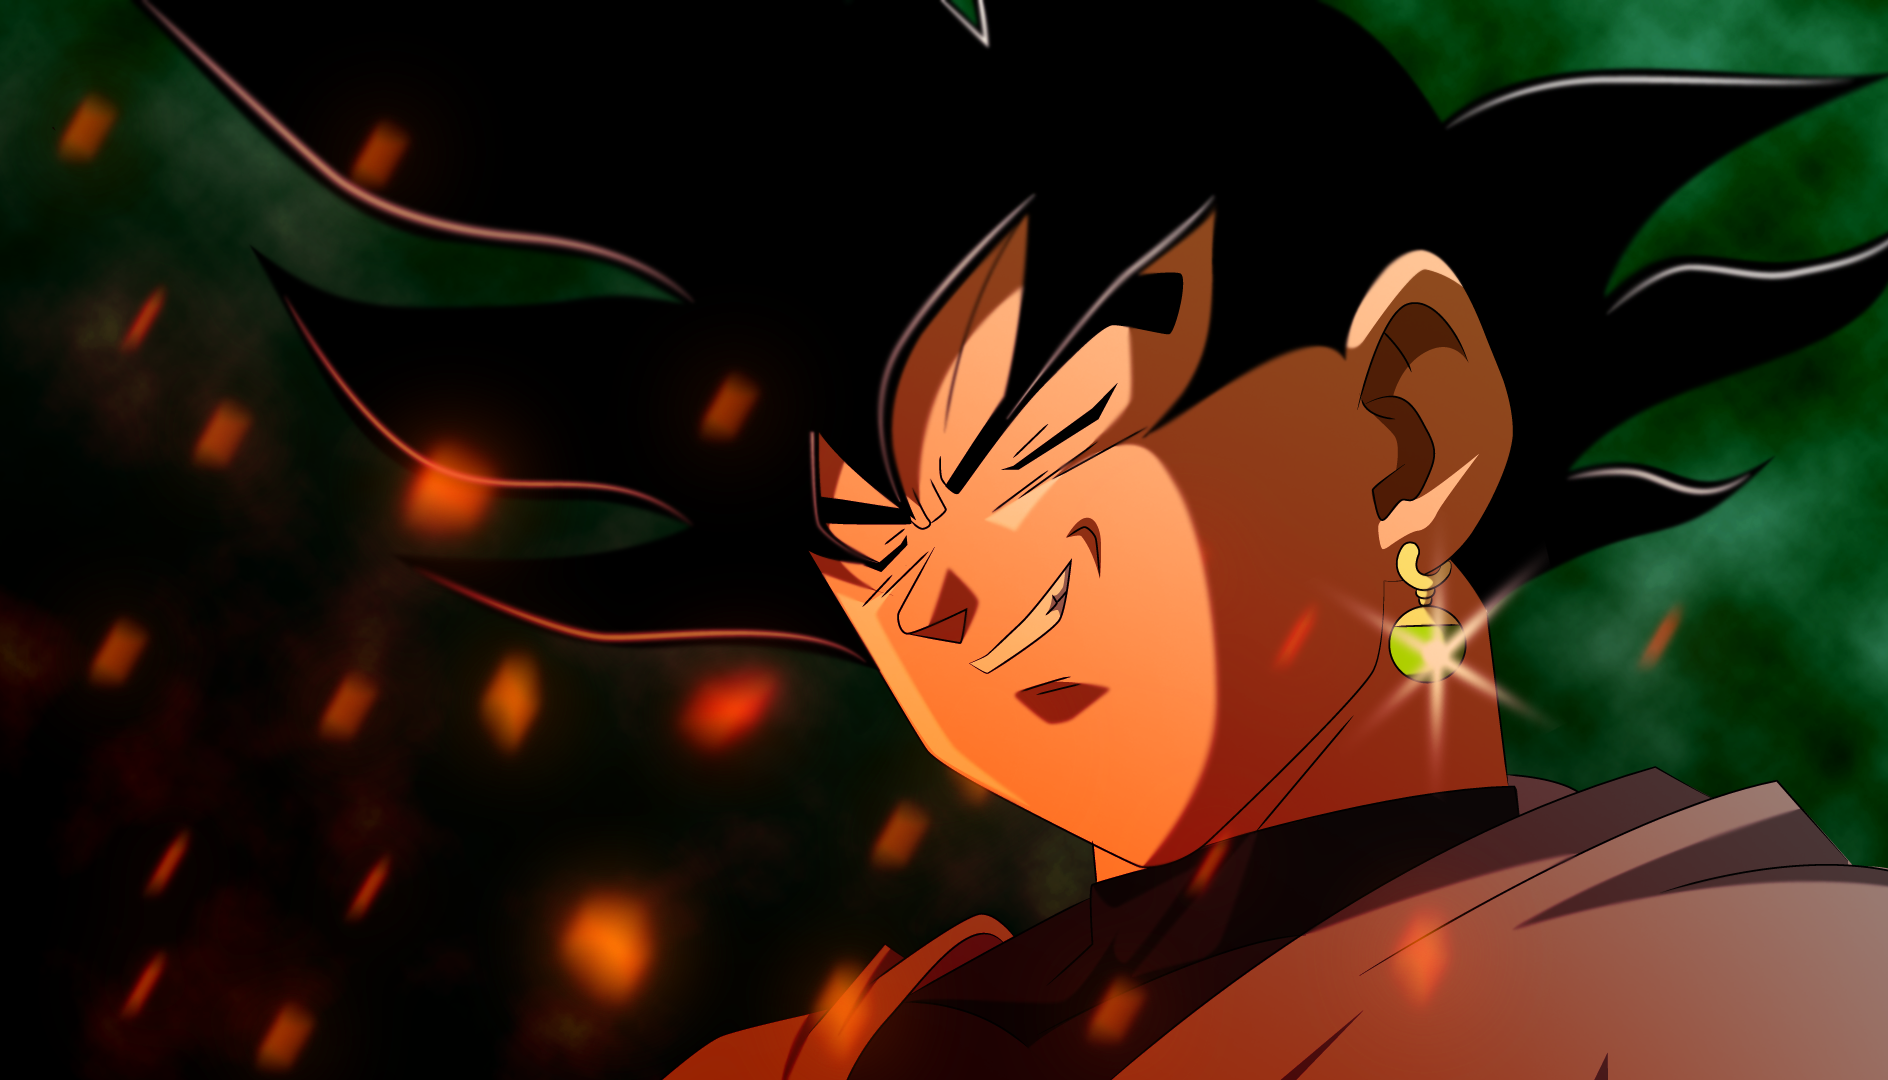 120 Black Goku Hd Wallpapers Background Images Wallpaper Abyss